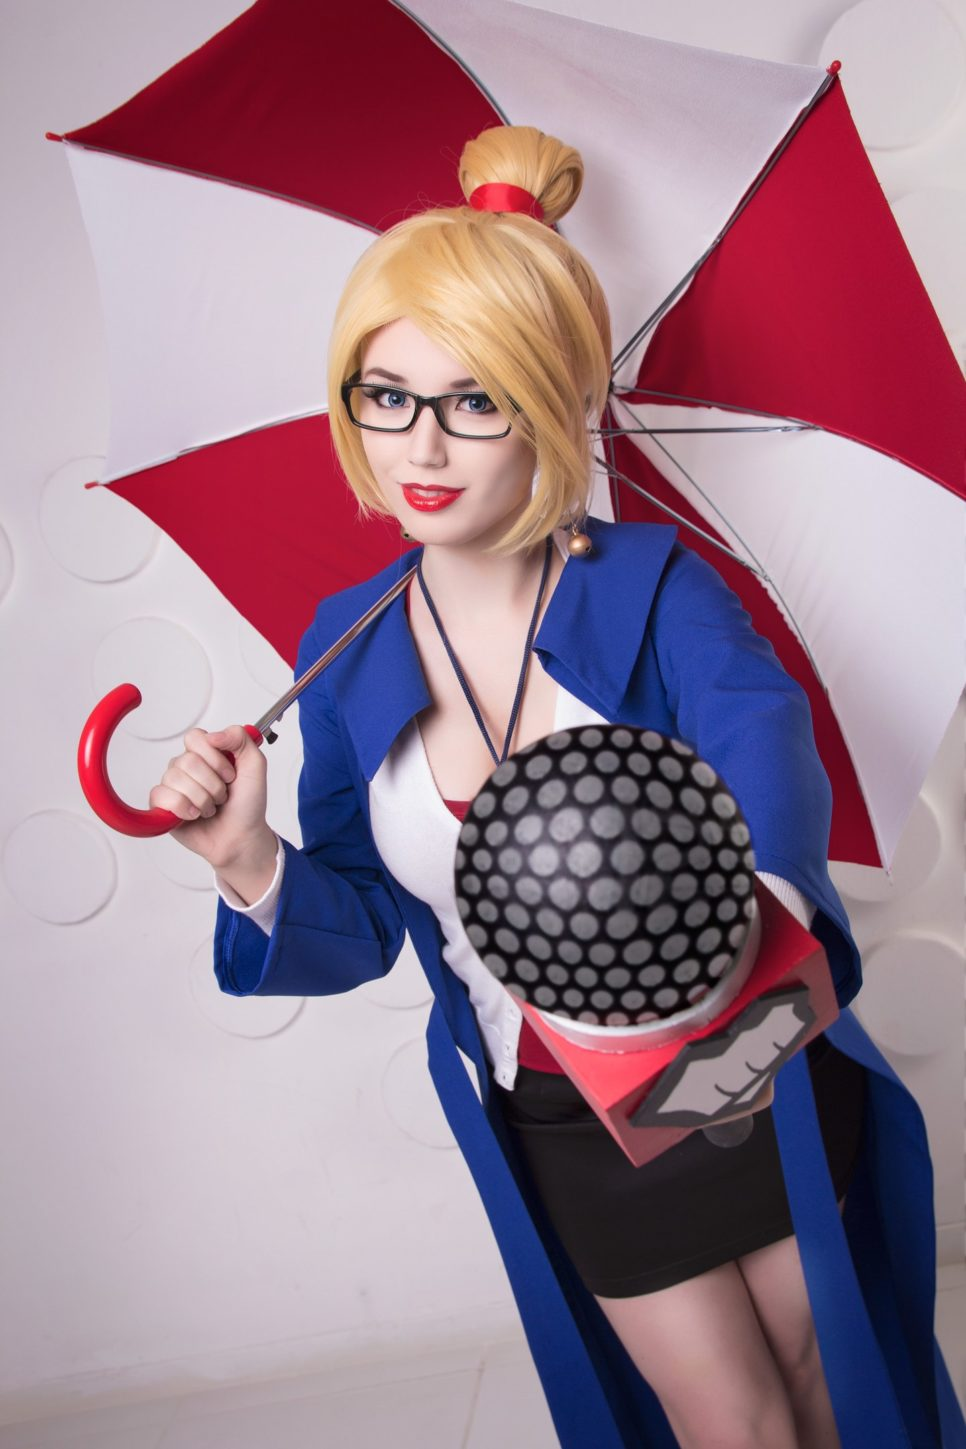 Forecast Janna z League of Legends - czas na cosplay!